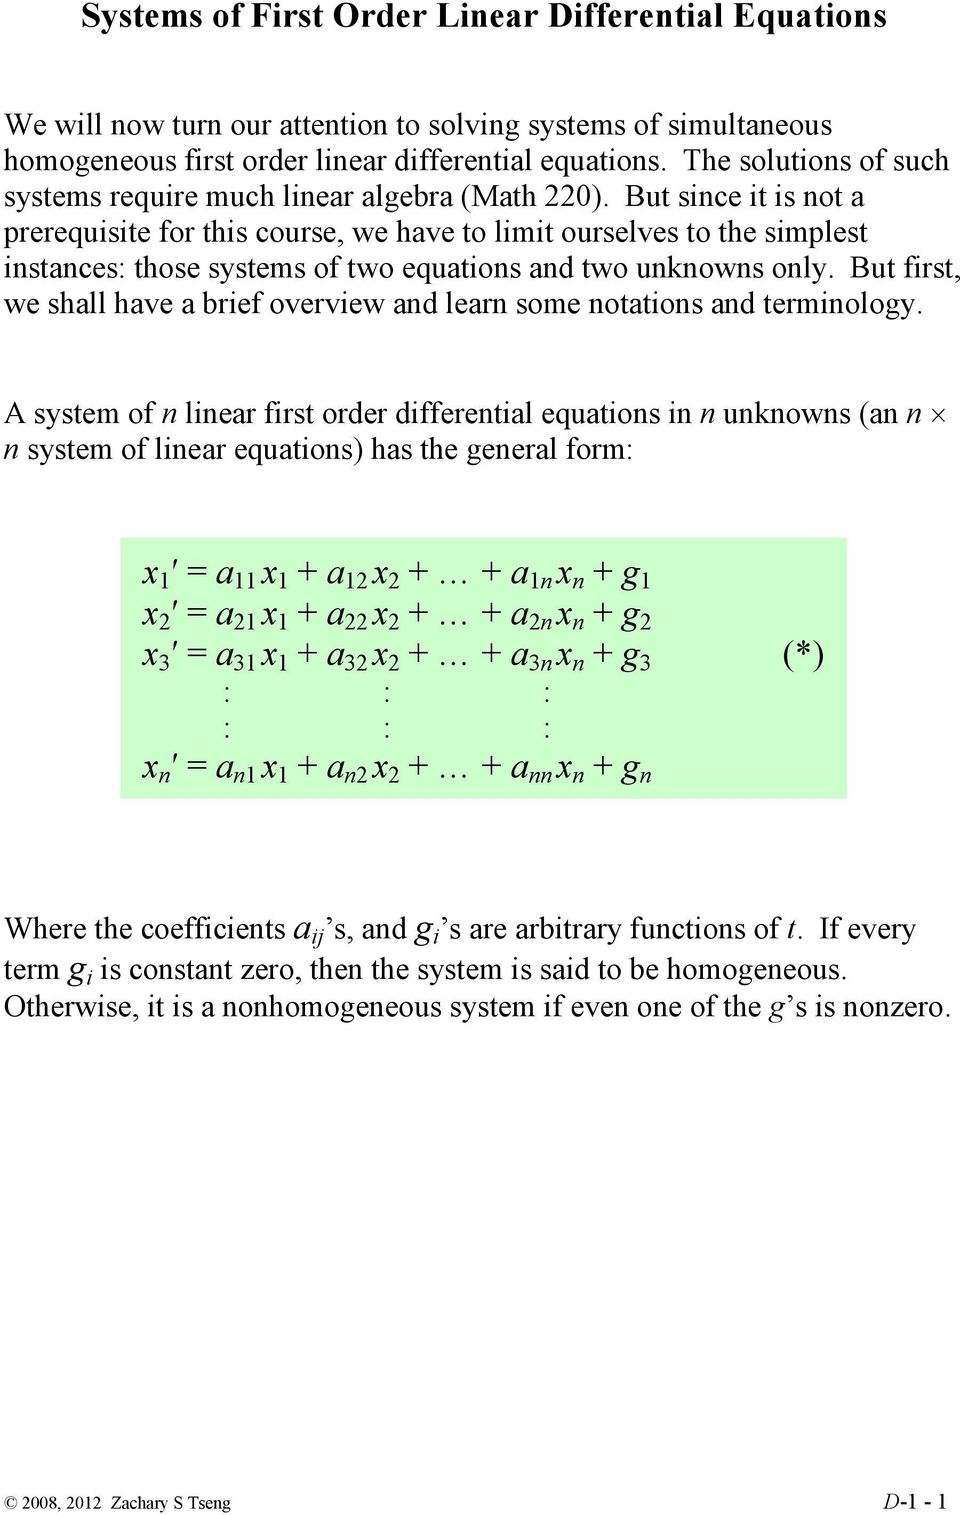 Systems of First Order Linear Differential Equations - PDF